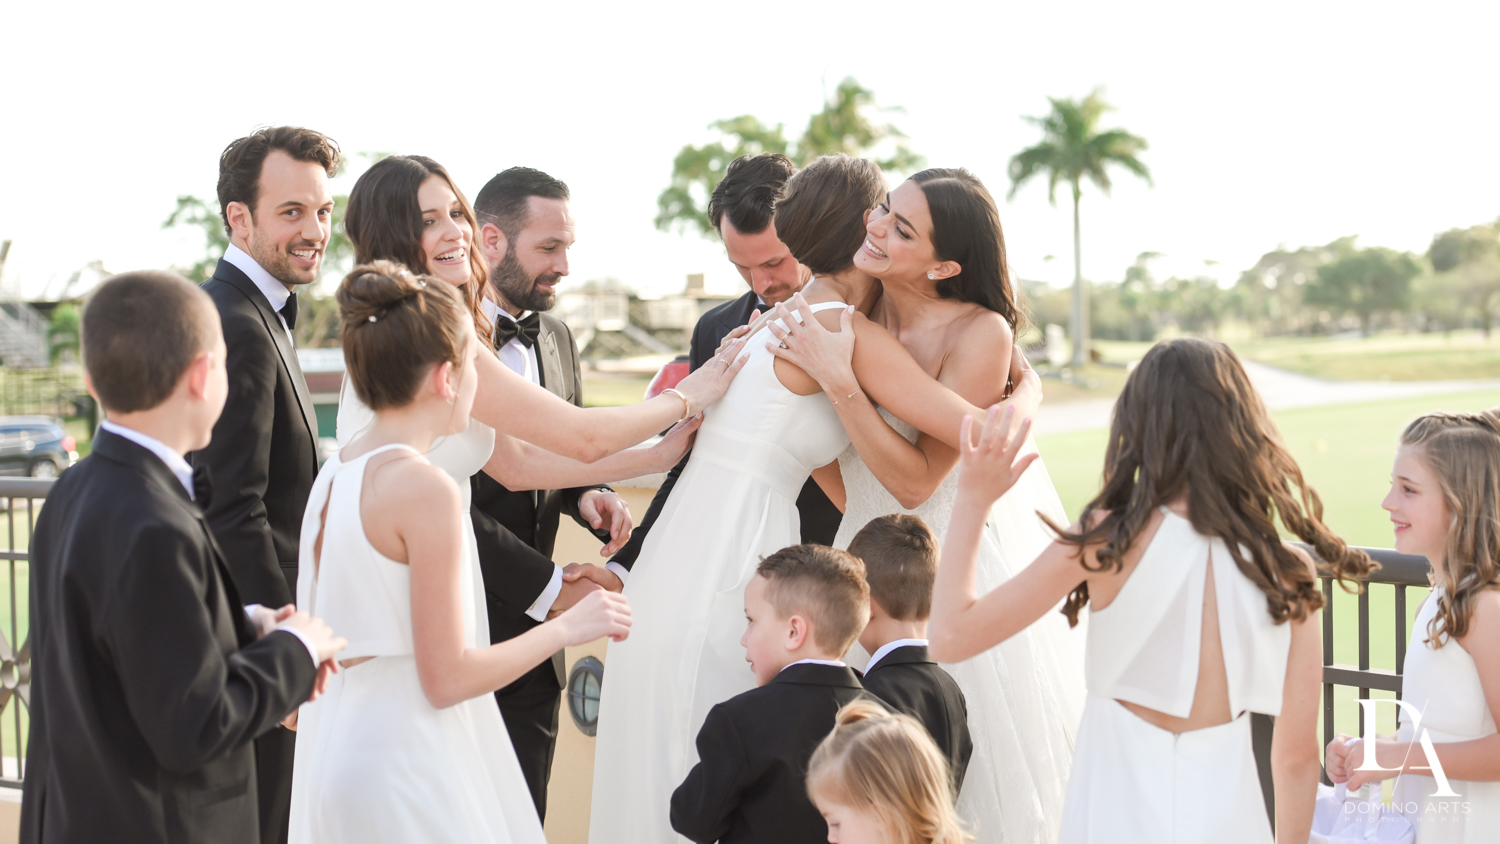 natural photos at Stunning Golf Course Wedding at PGA National Palm Beach by Domino Arts Photography